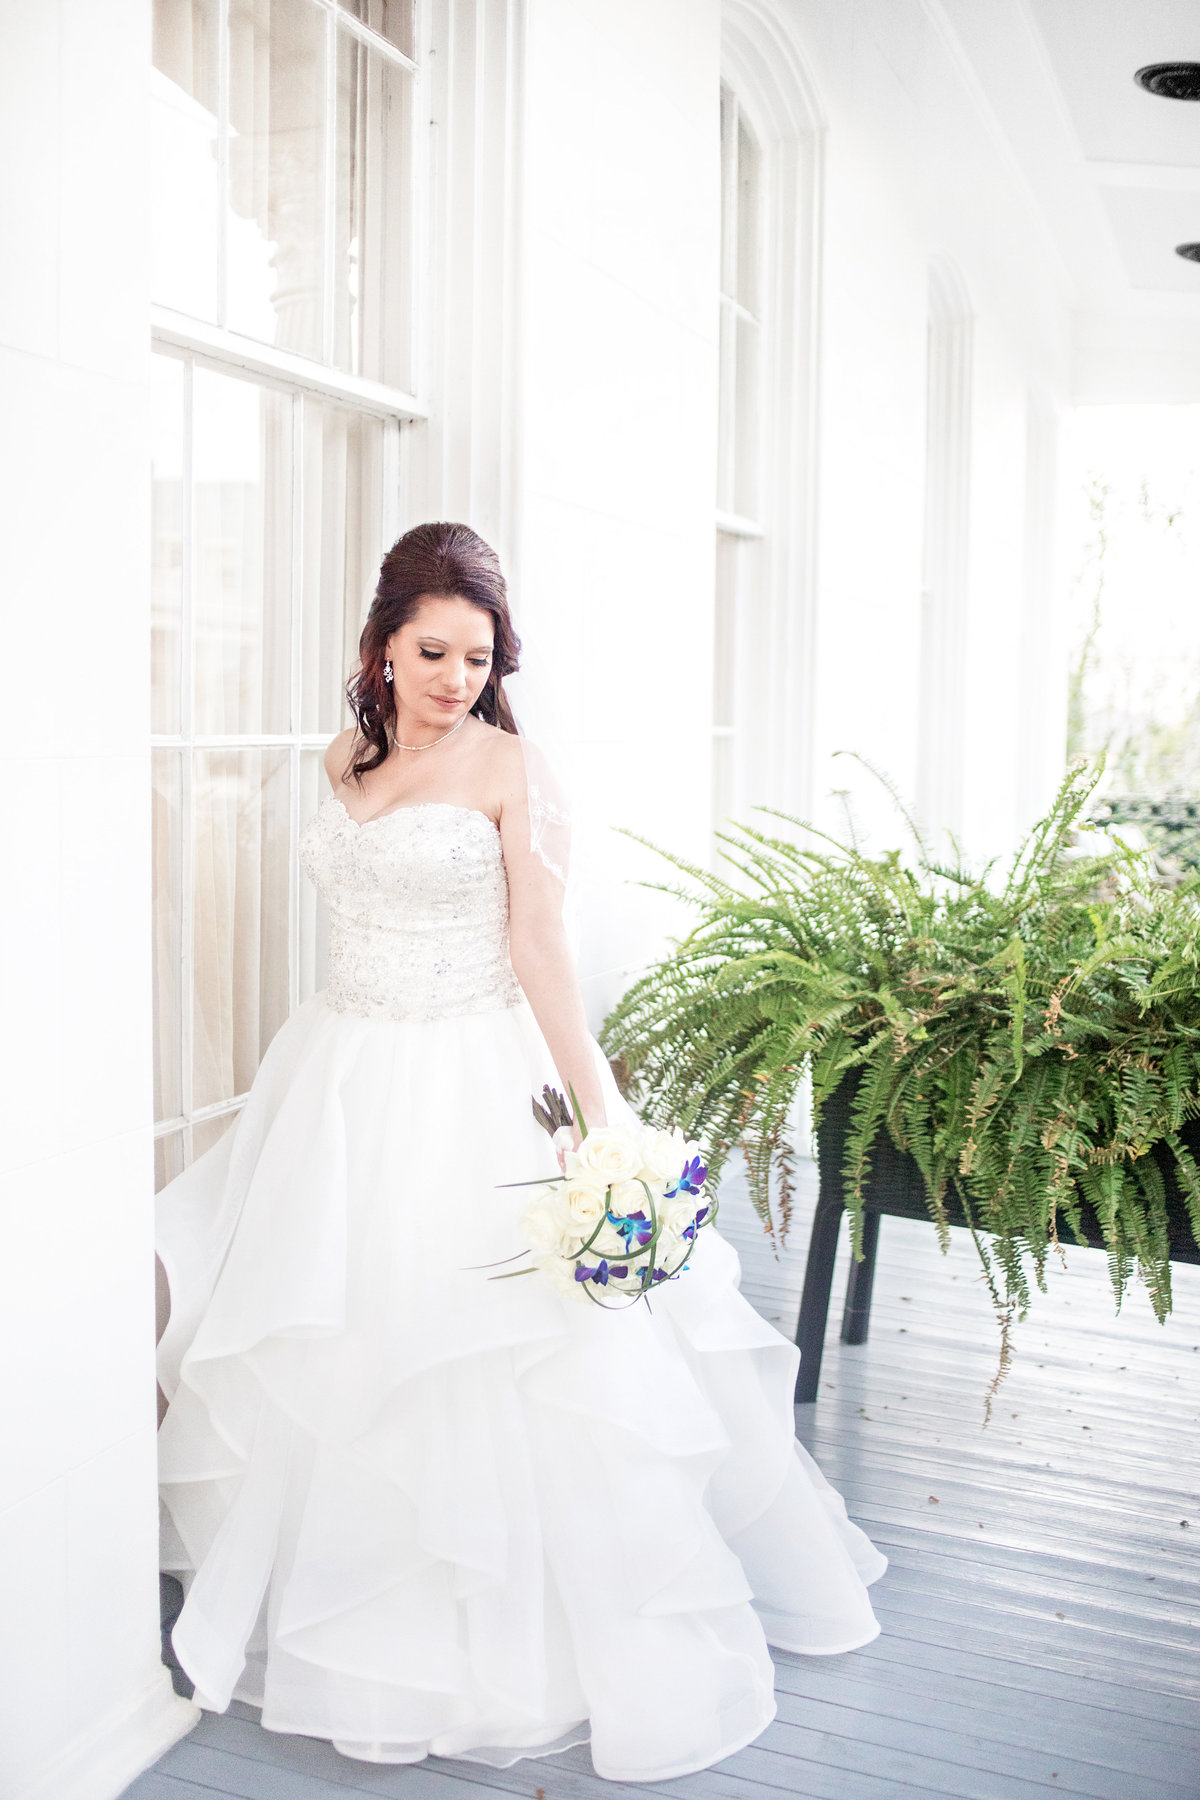 chicboutiquephotography_Chris_kelly_wedding_124